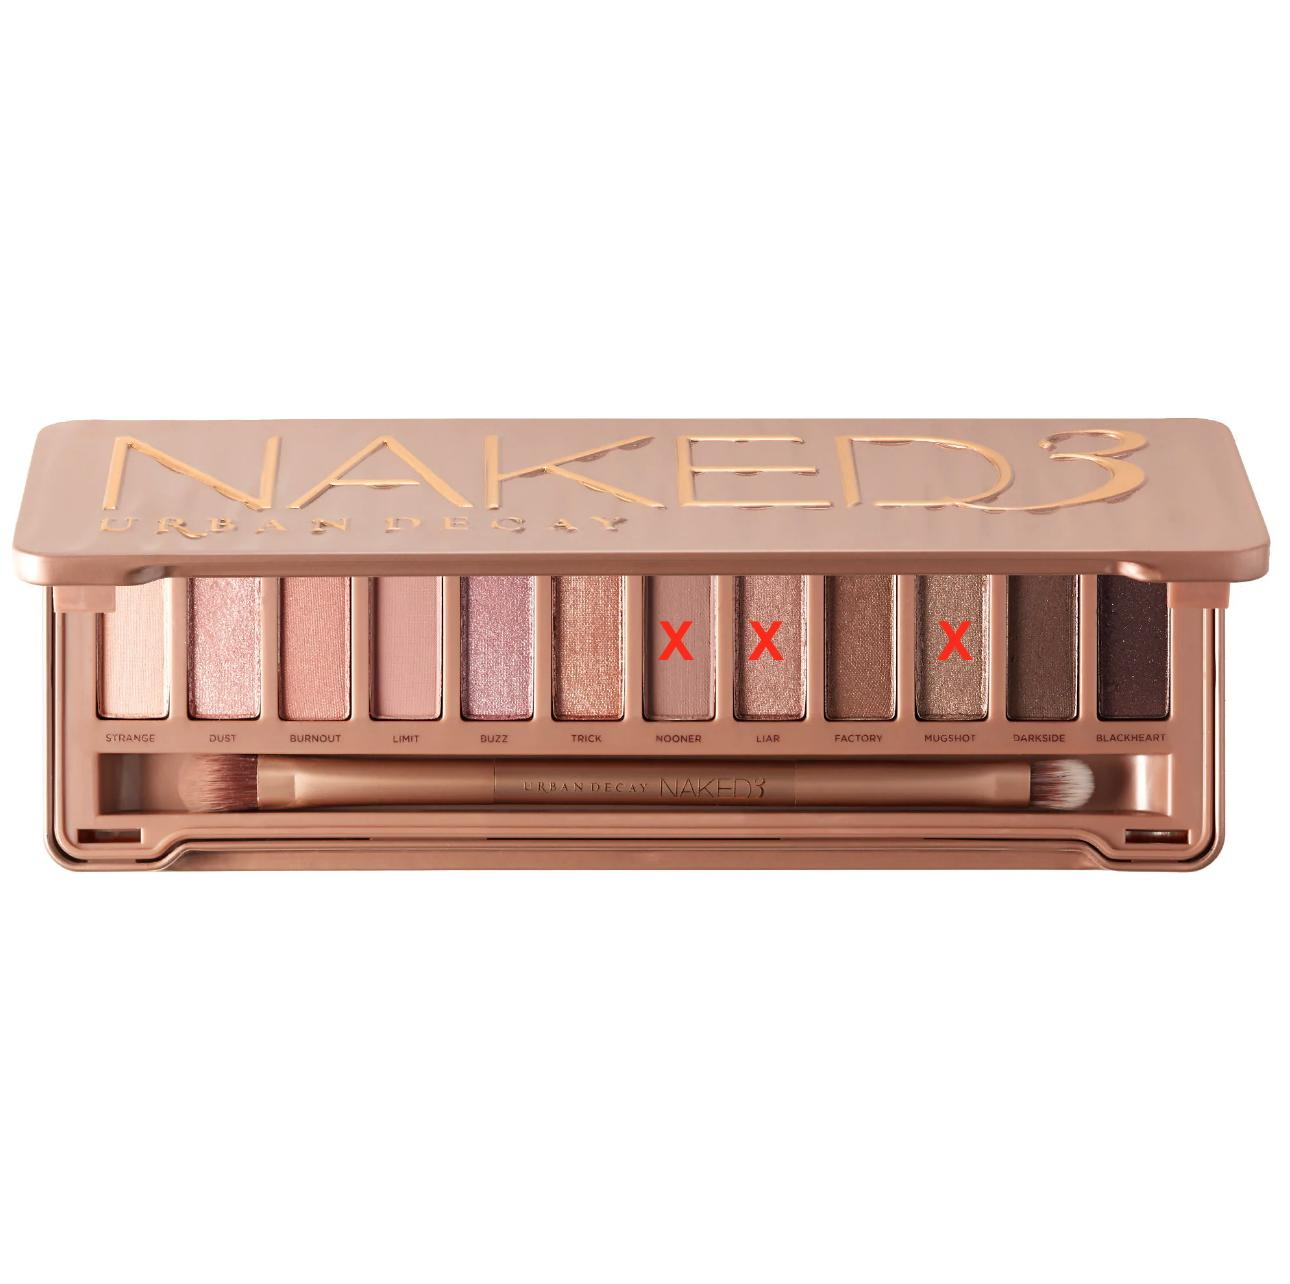 Urban Decay Naked3 Palette (without nooner, liar, mugshot)